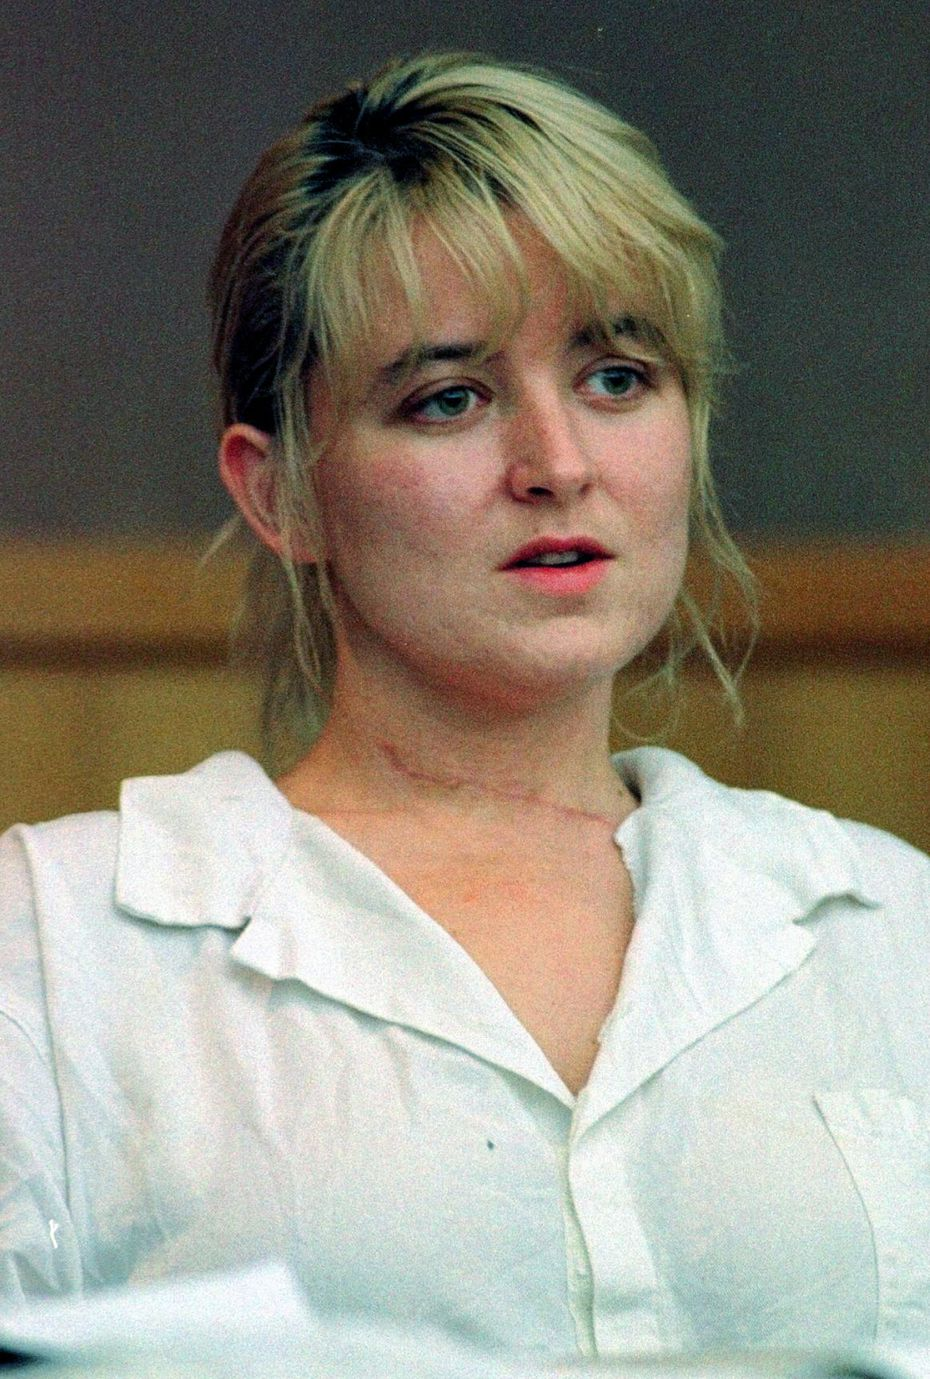 In this June 1996 photo, Darlie Routier sits during an examination of evidence hearing in a Dallas courtroom. Routier is on death row for the slaying of her 5-year-old son, Damon. She was convicted in 1997.